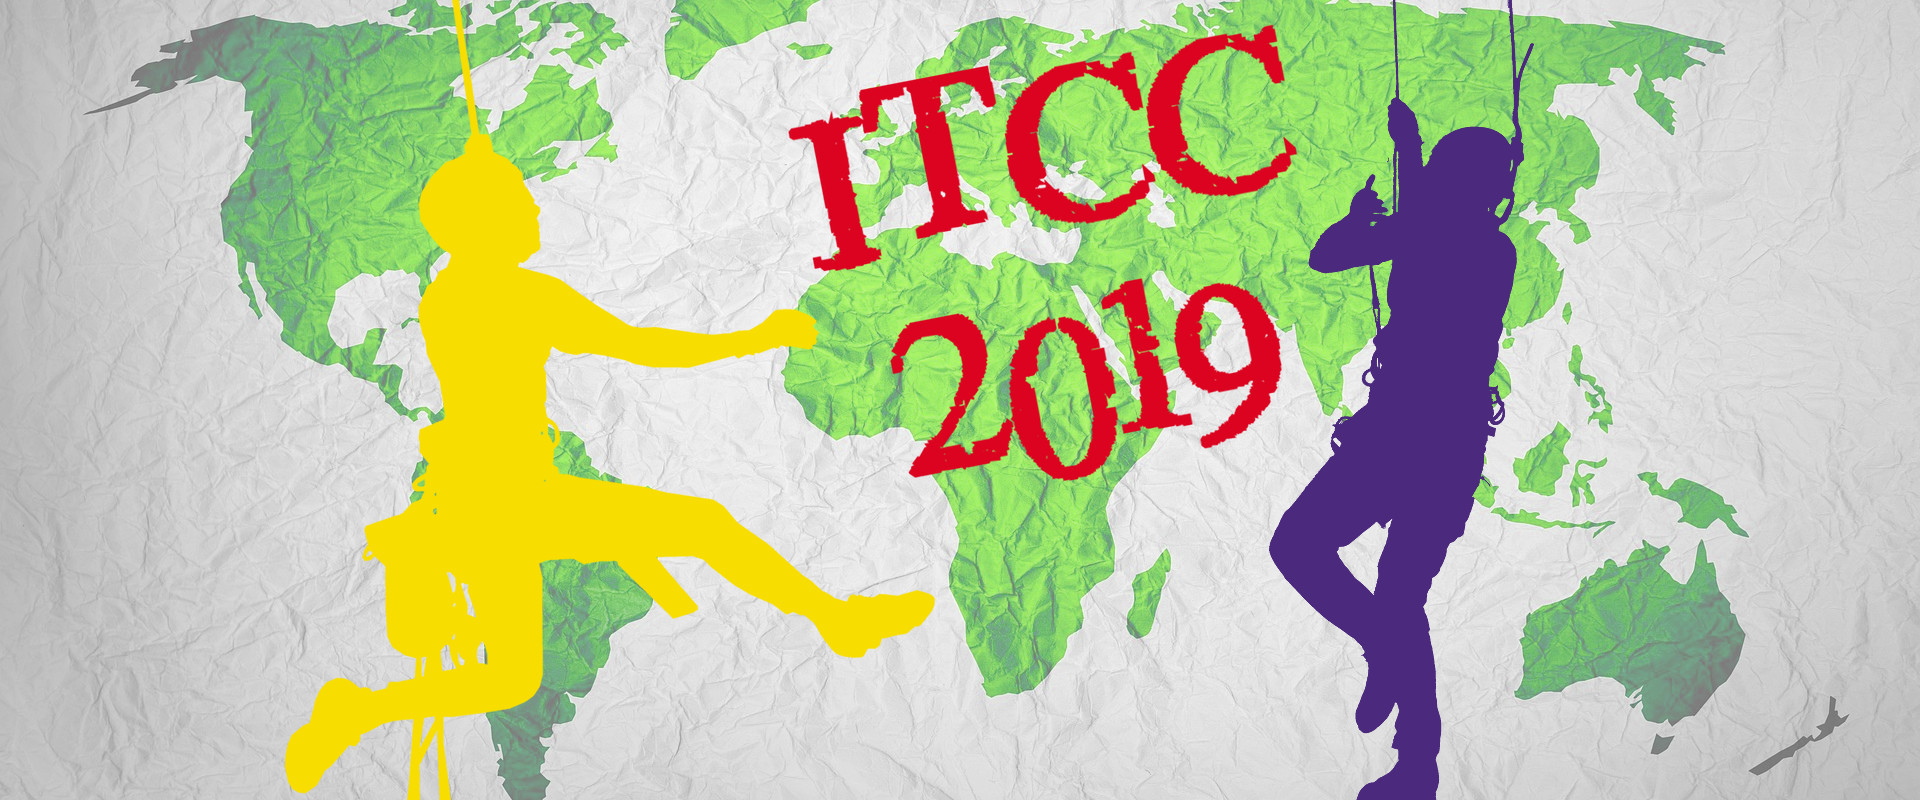 Permalink to: ITCC 2019 – The top climbers are moving closer together